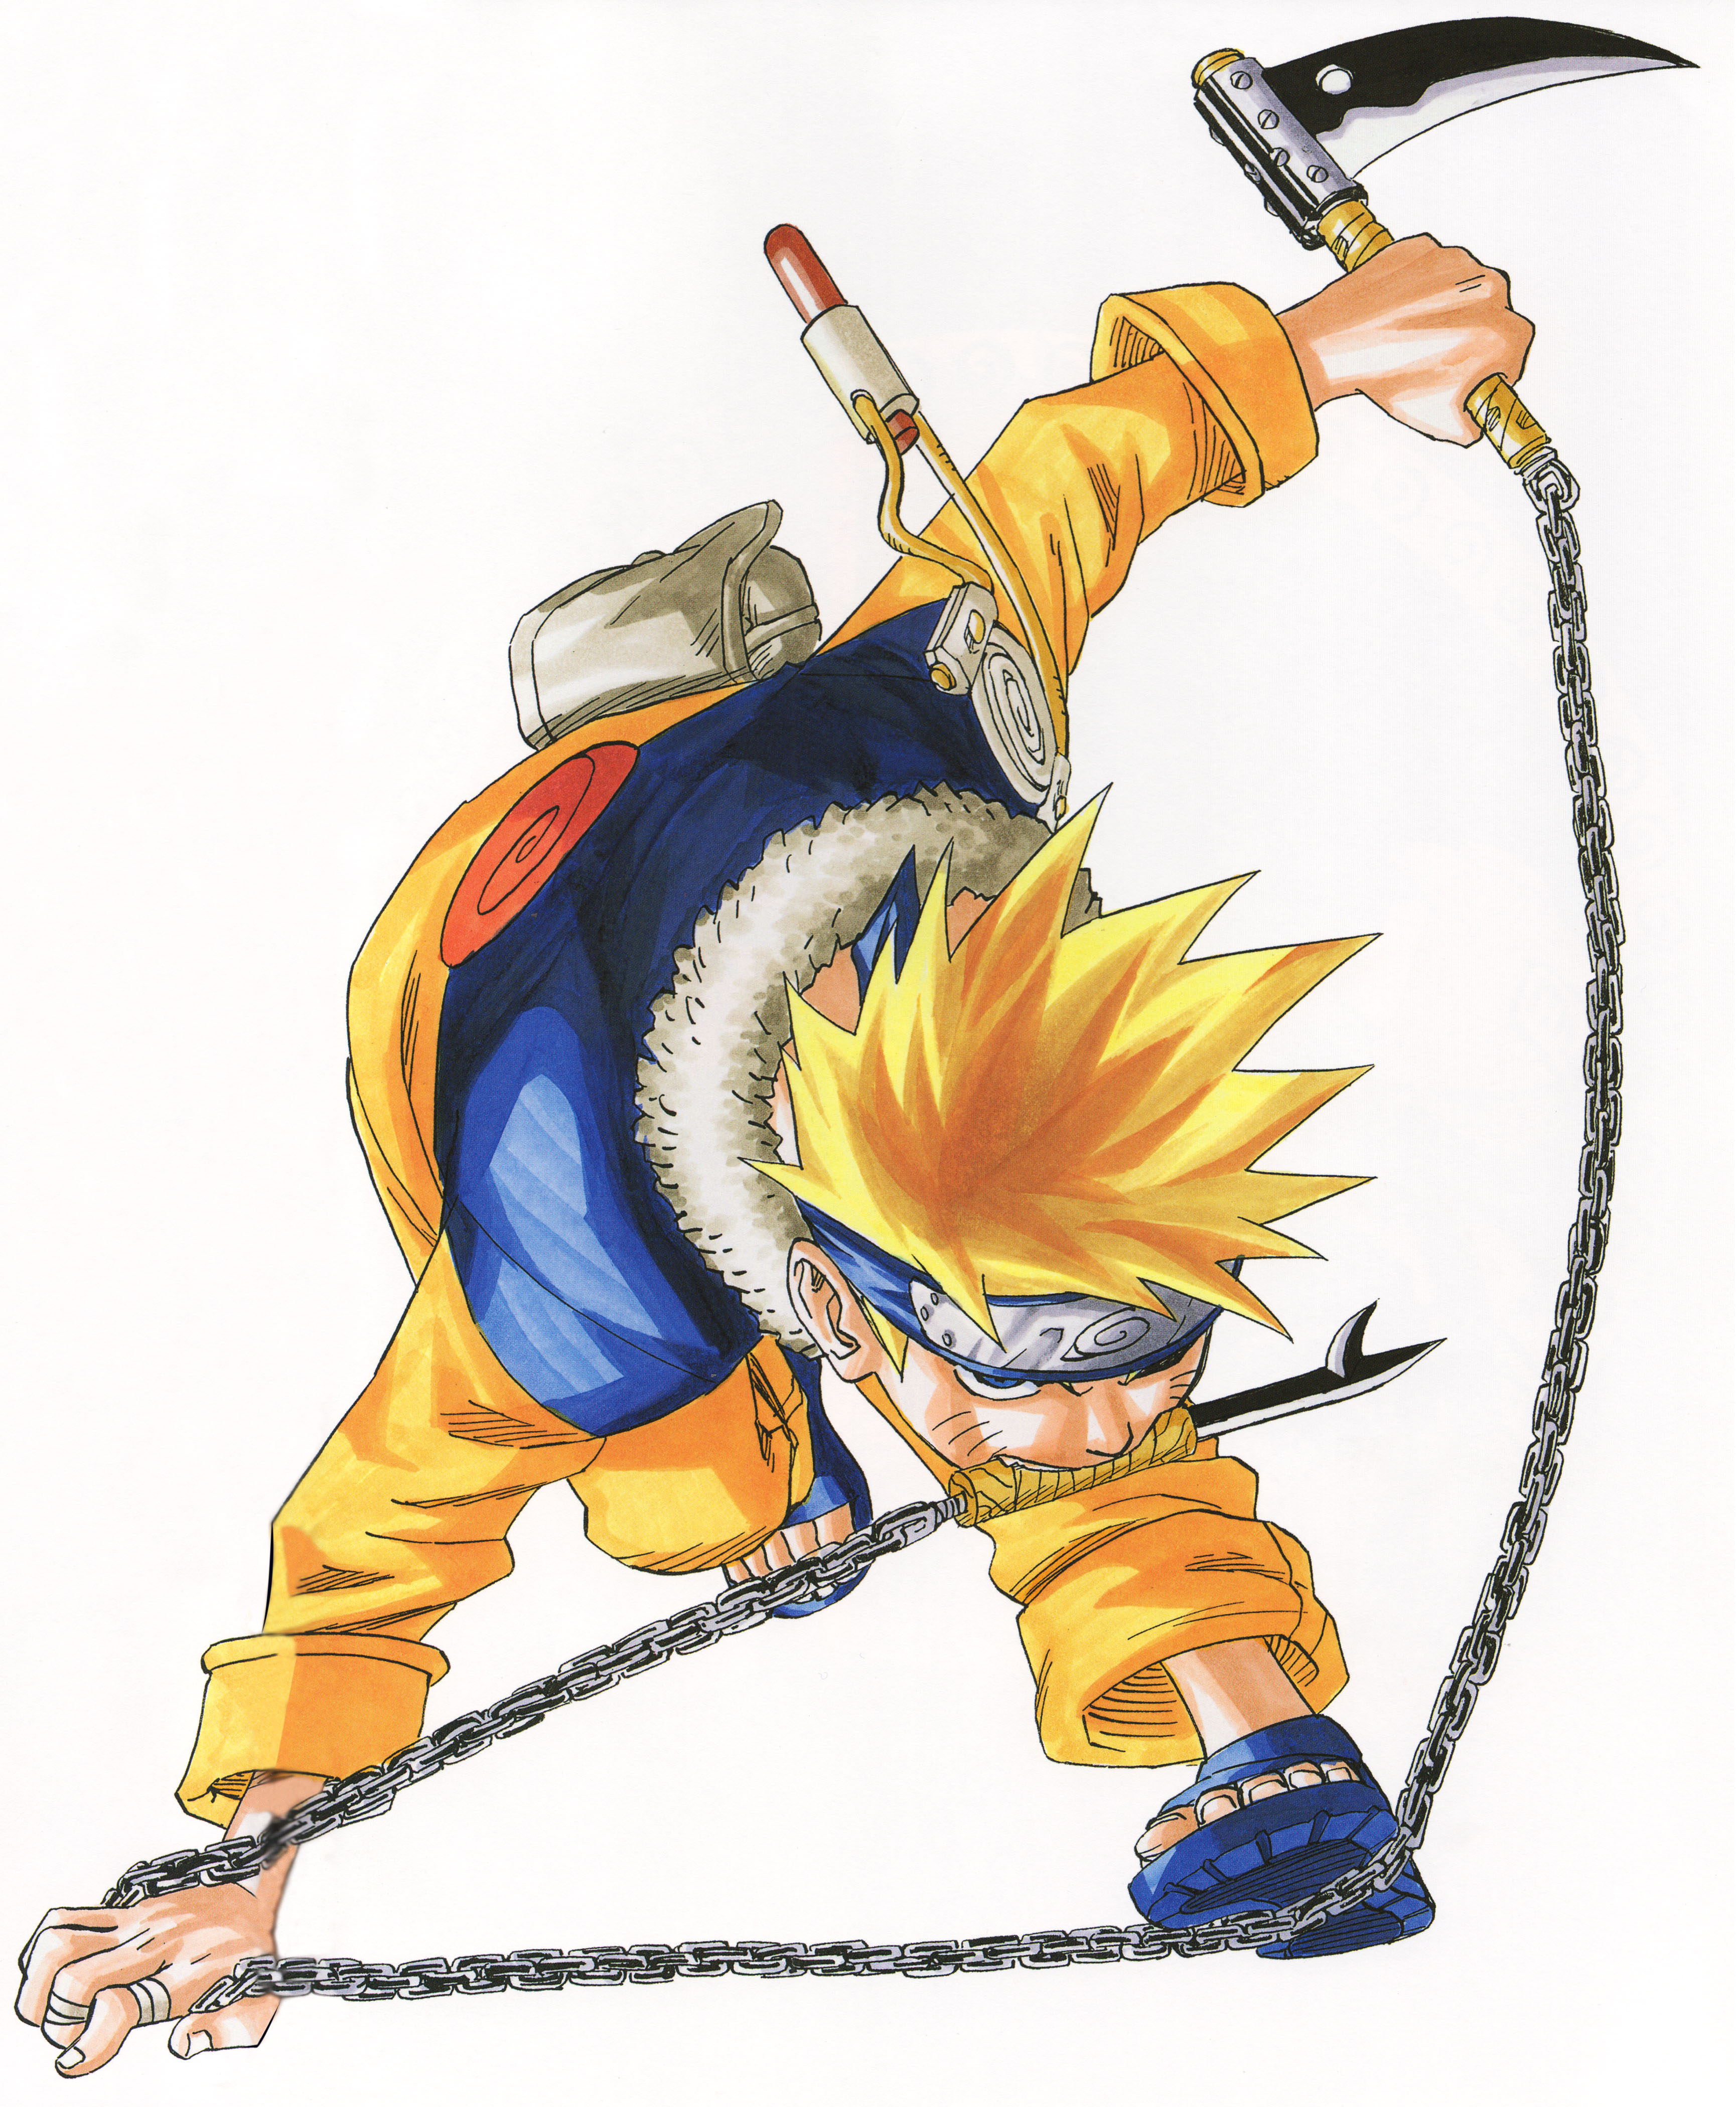 Naruto with a Chain in his Mouth